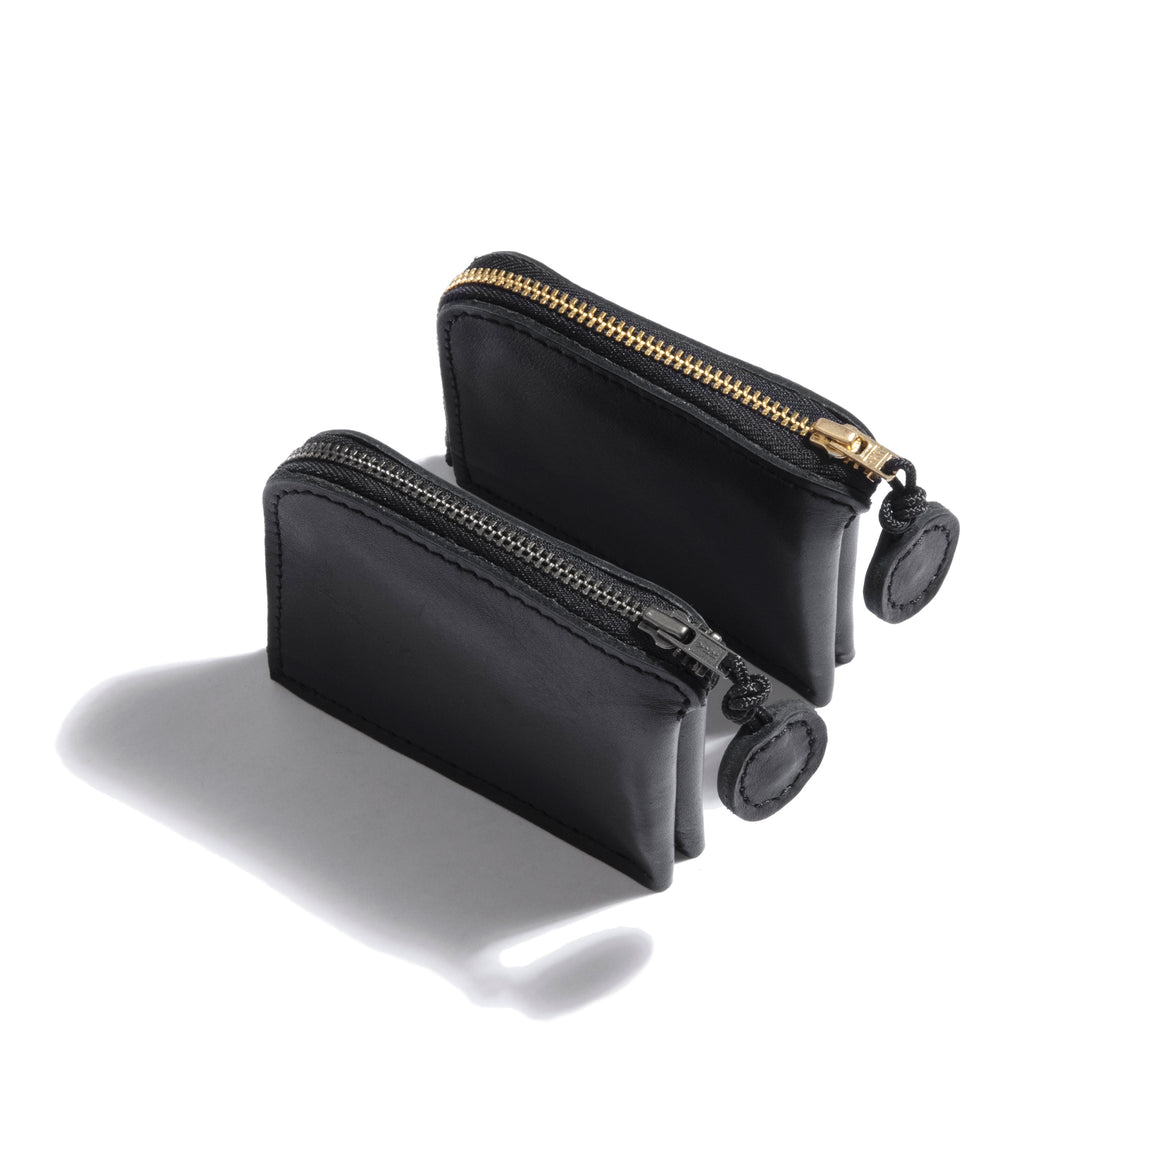 Solely Wallet - Black